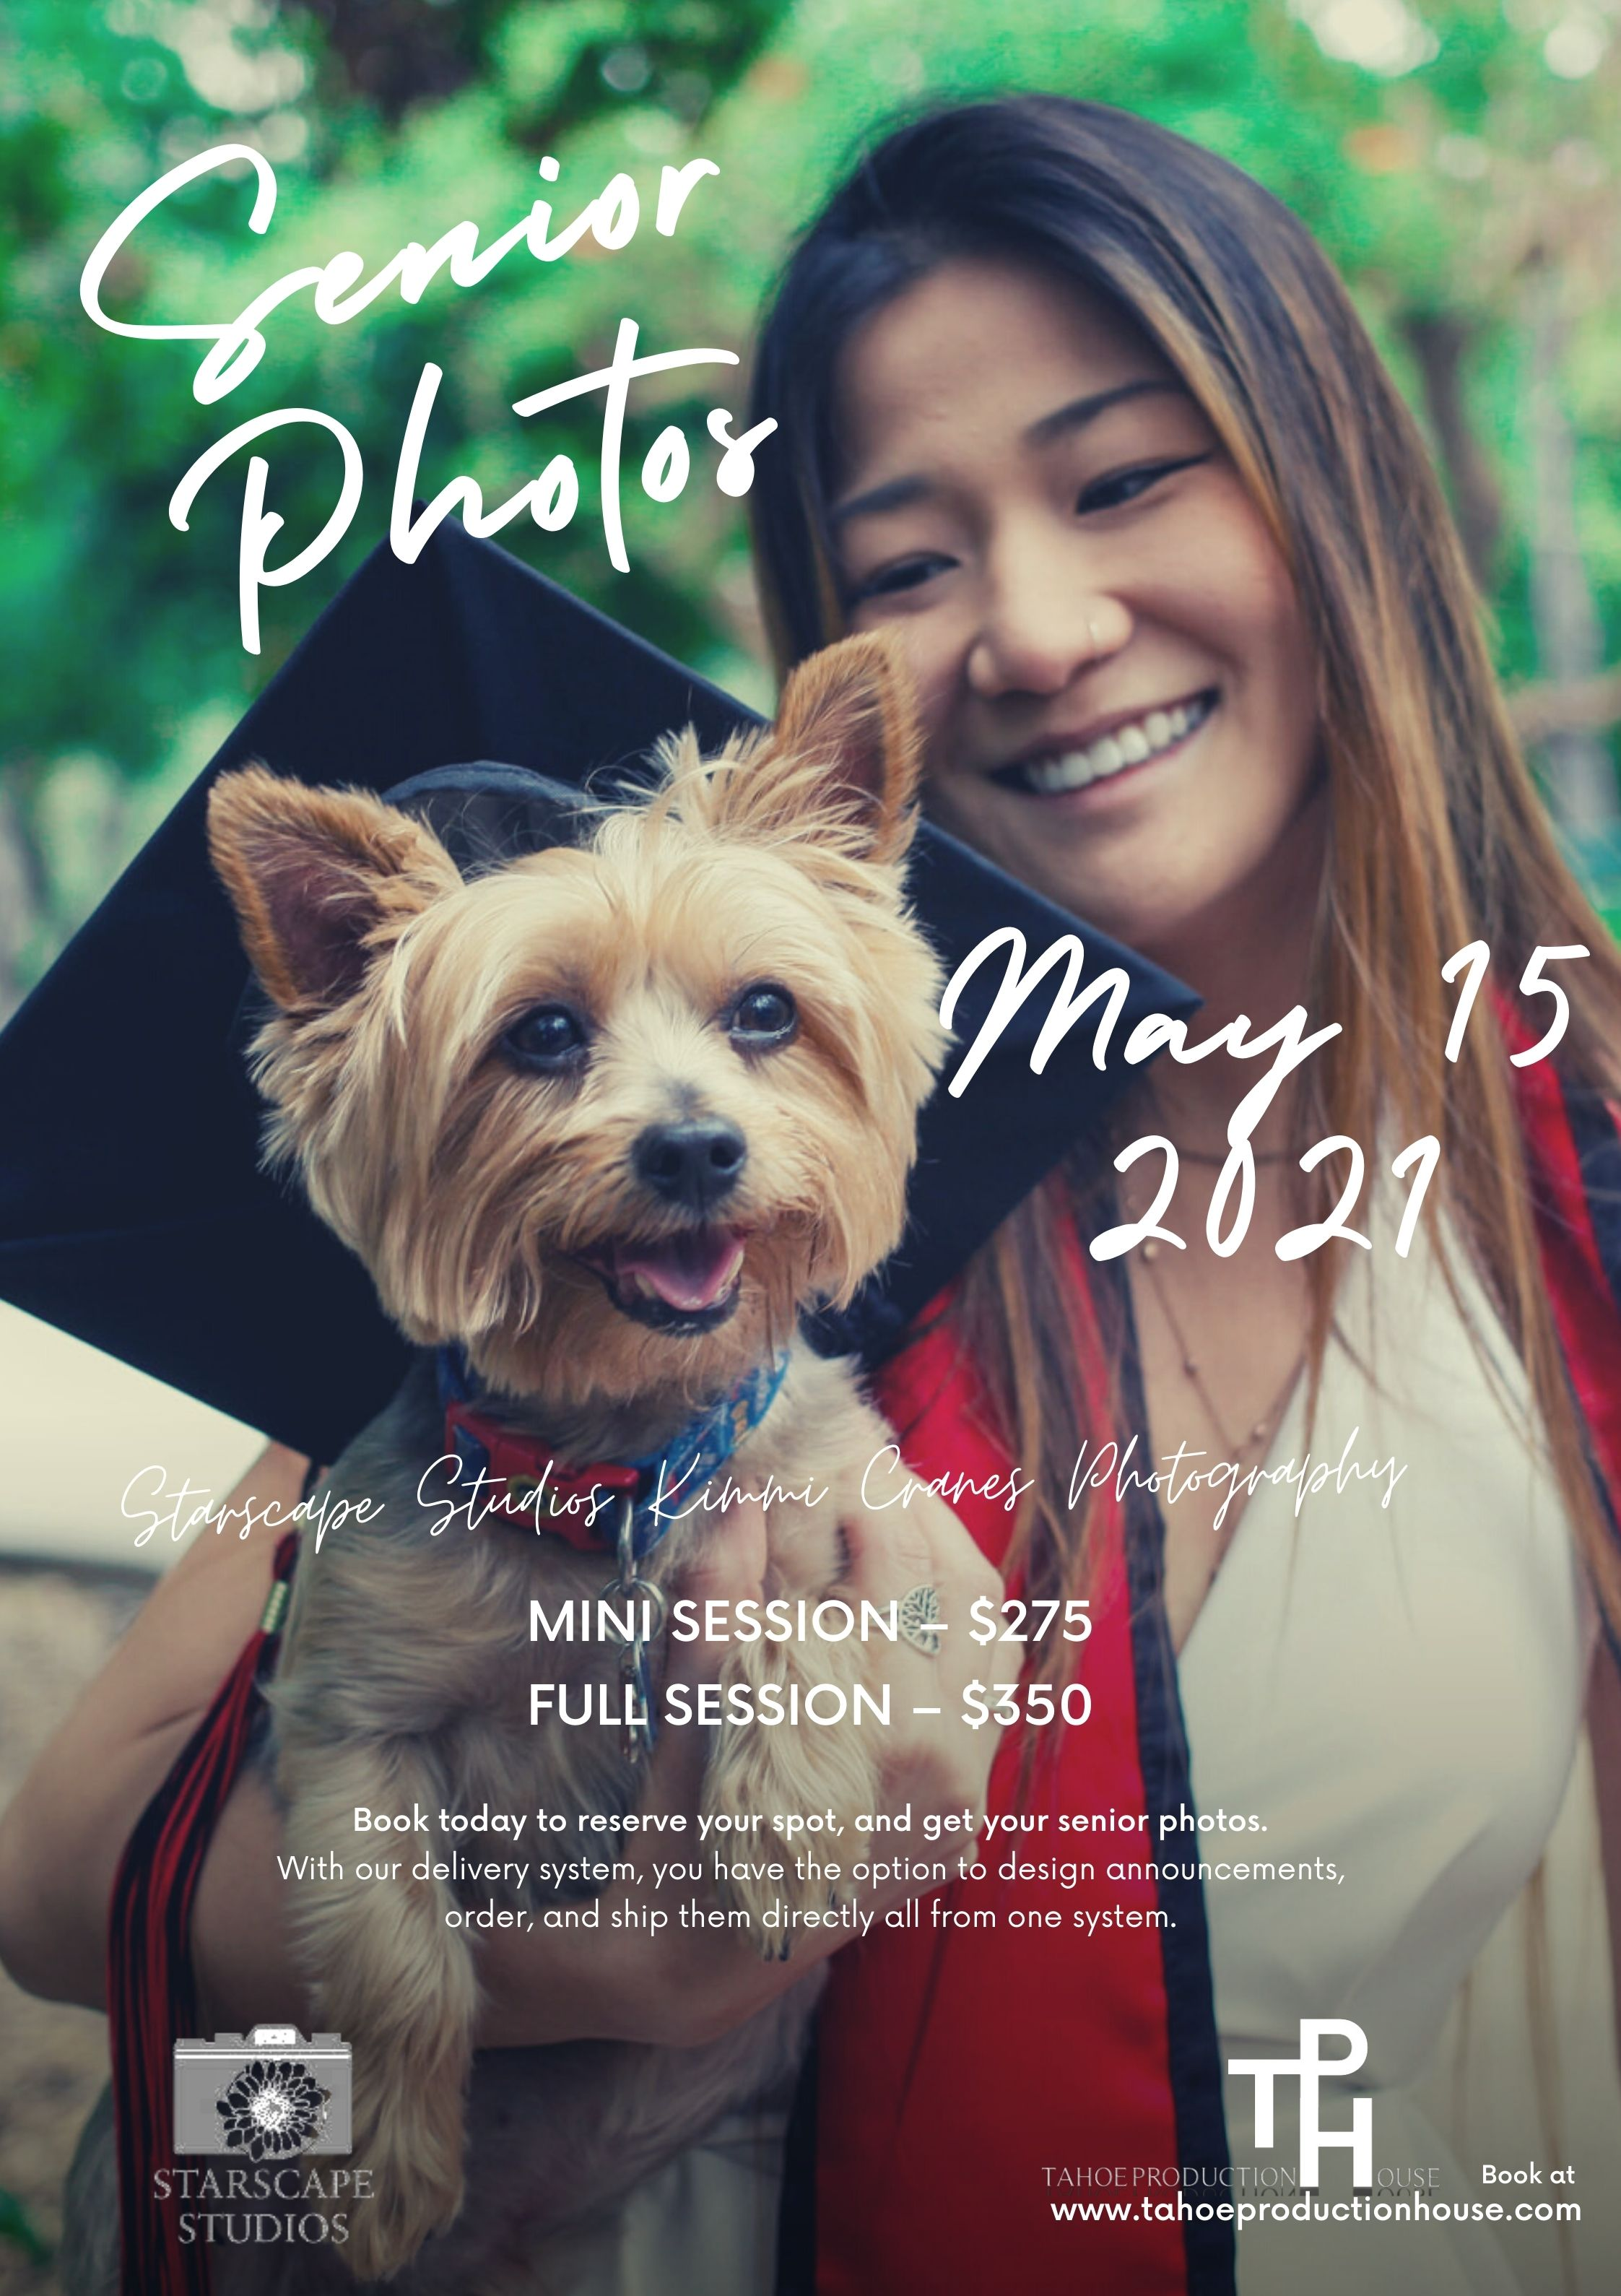 Starscape Studios Presents Senior Photo Sessions with Kimmi Cranes @ Barton Meadow